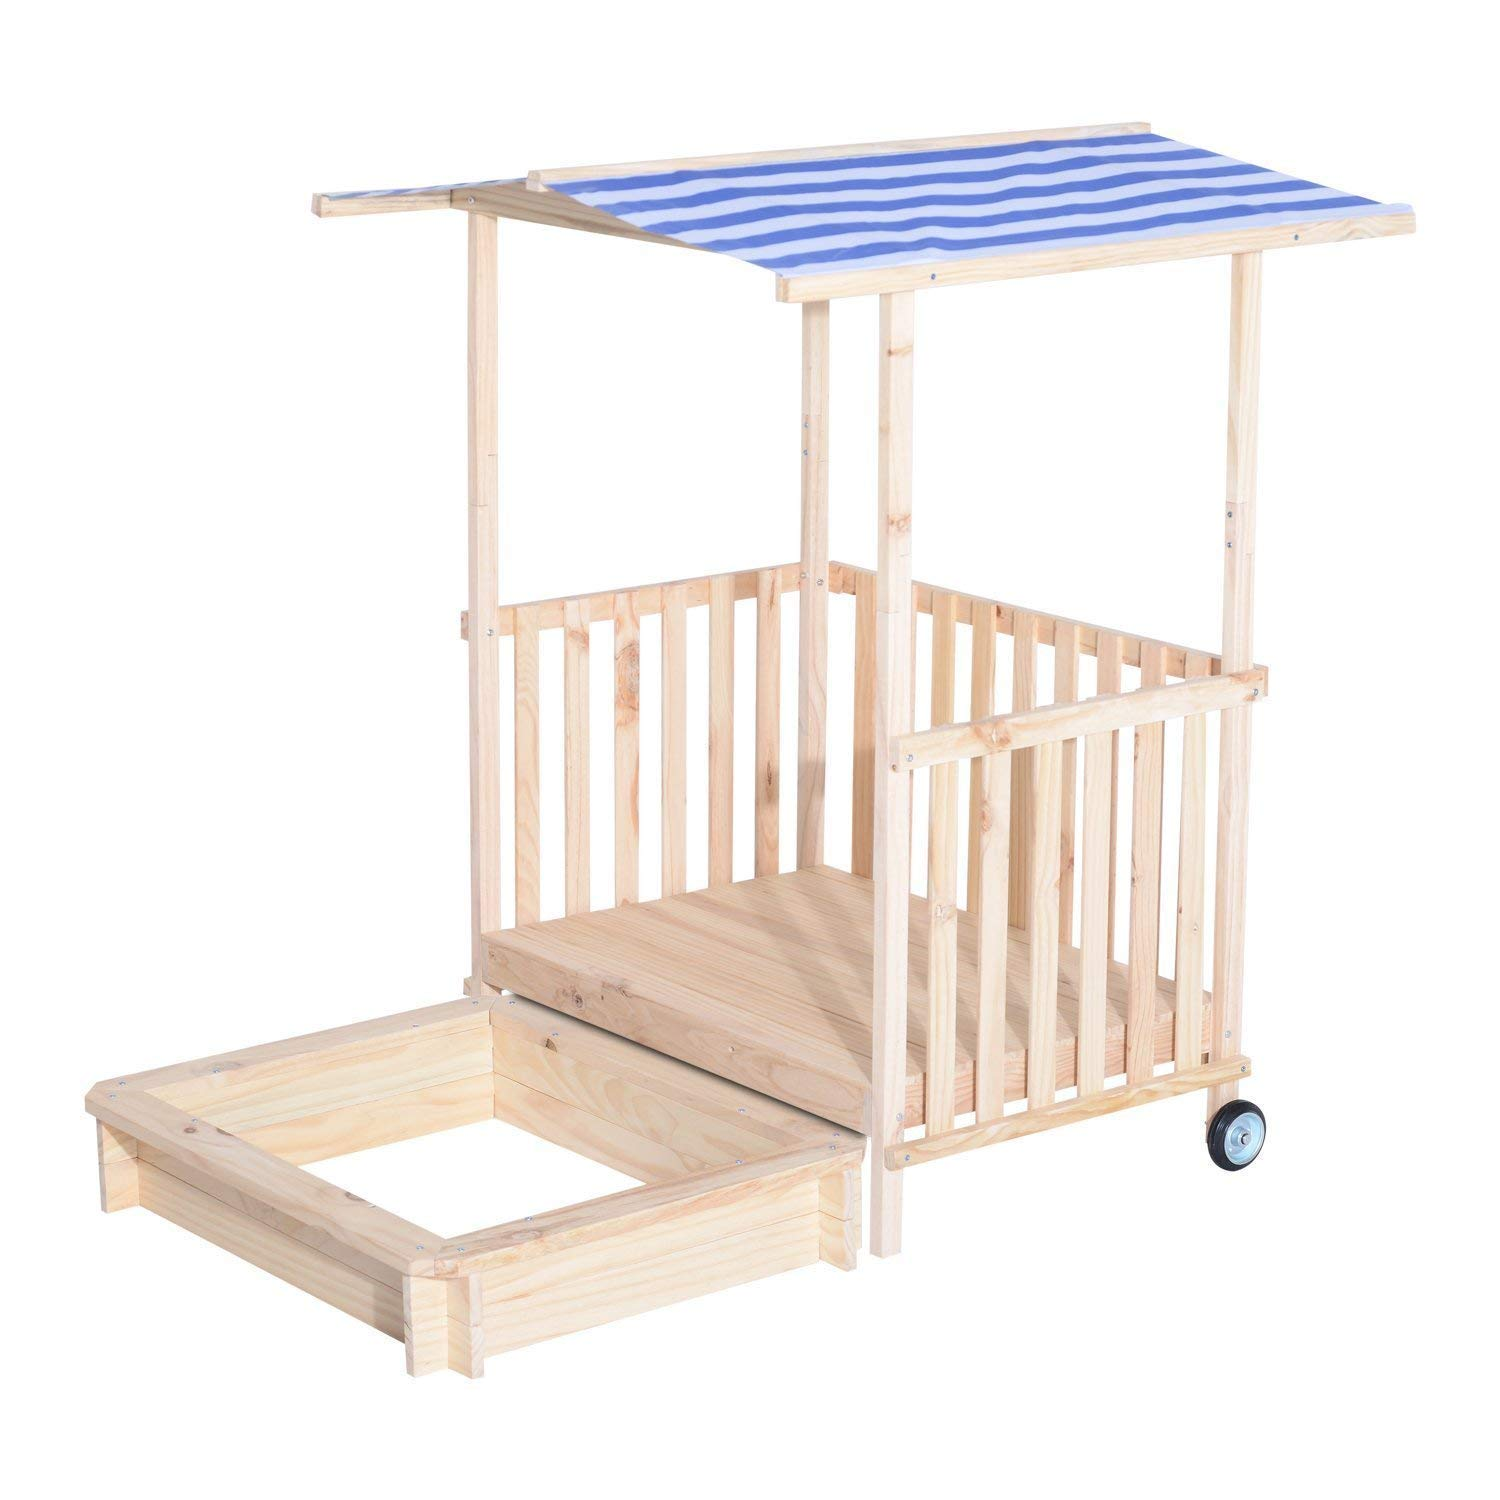 "Clearance Qaba Wooden 41"" Kids Outdoor Retractable Playhouse Rolling Backyard Fort Beach Cabana with Sandbox and Canopy Aosom Canada"